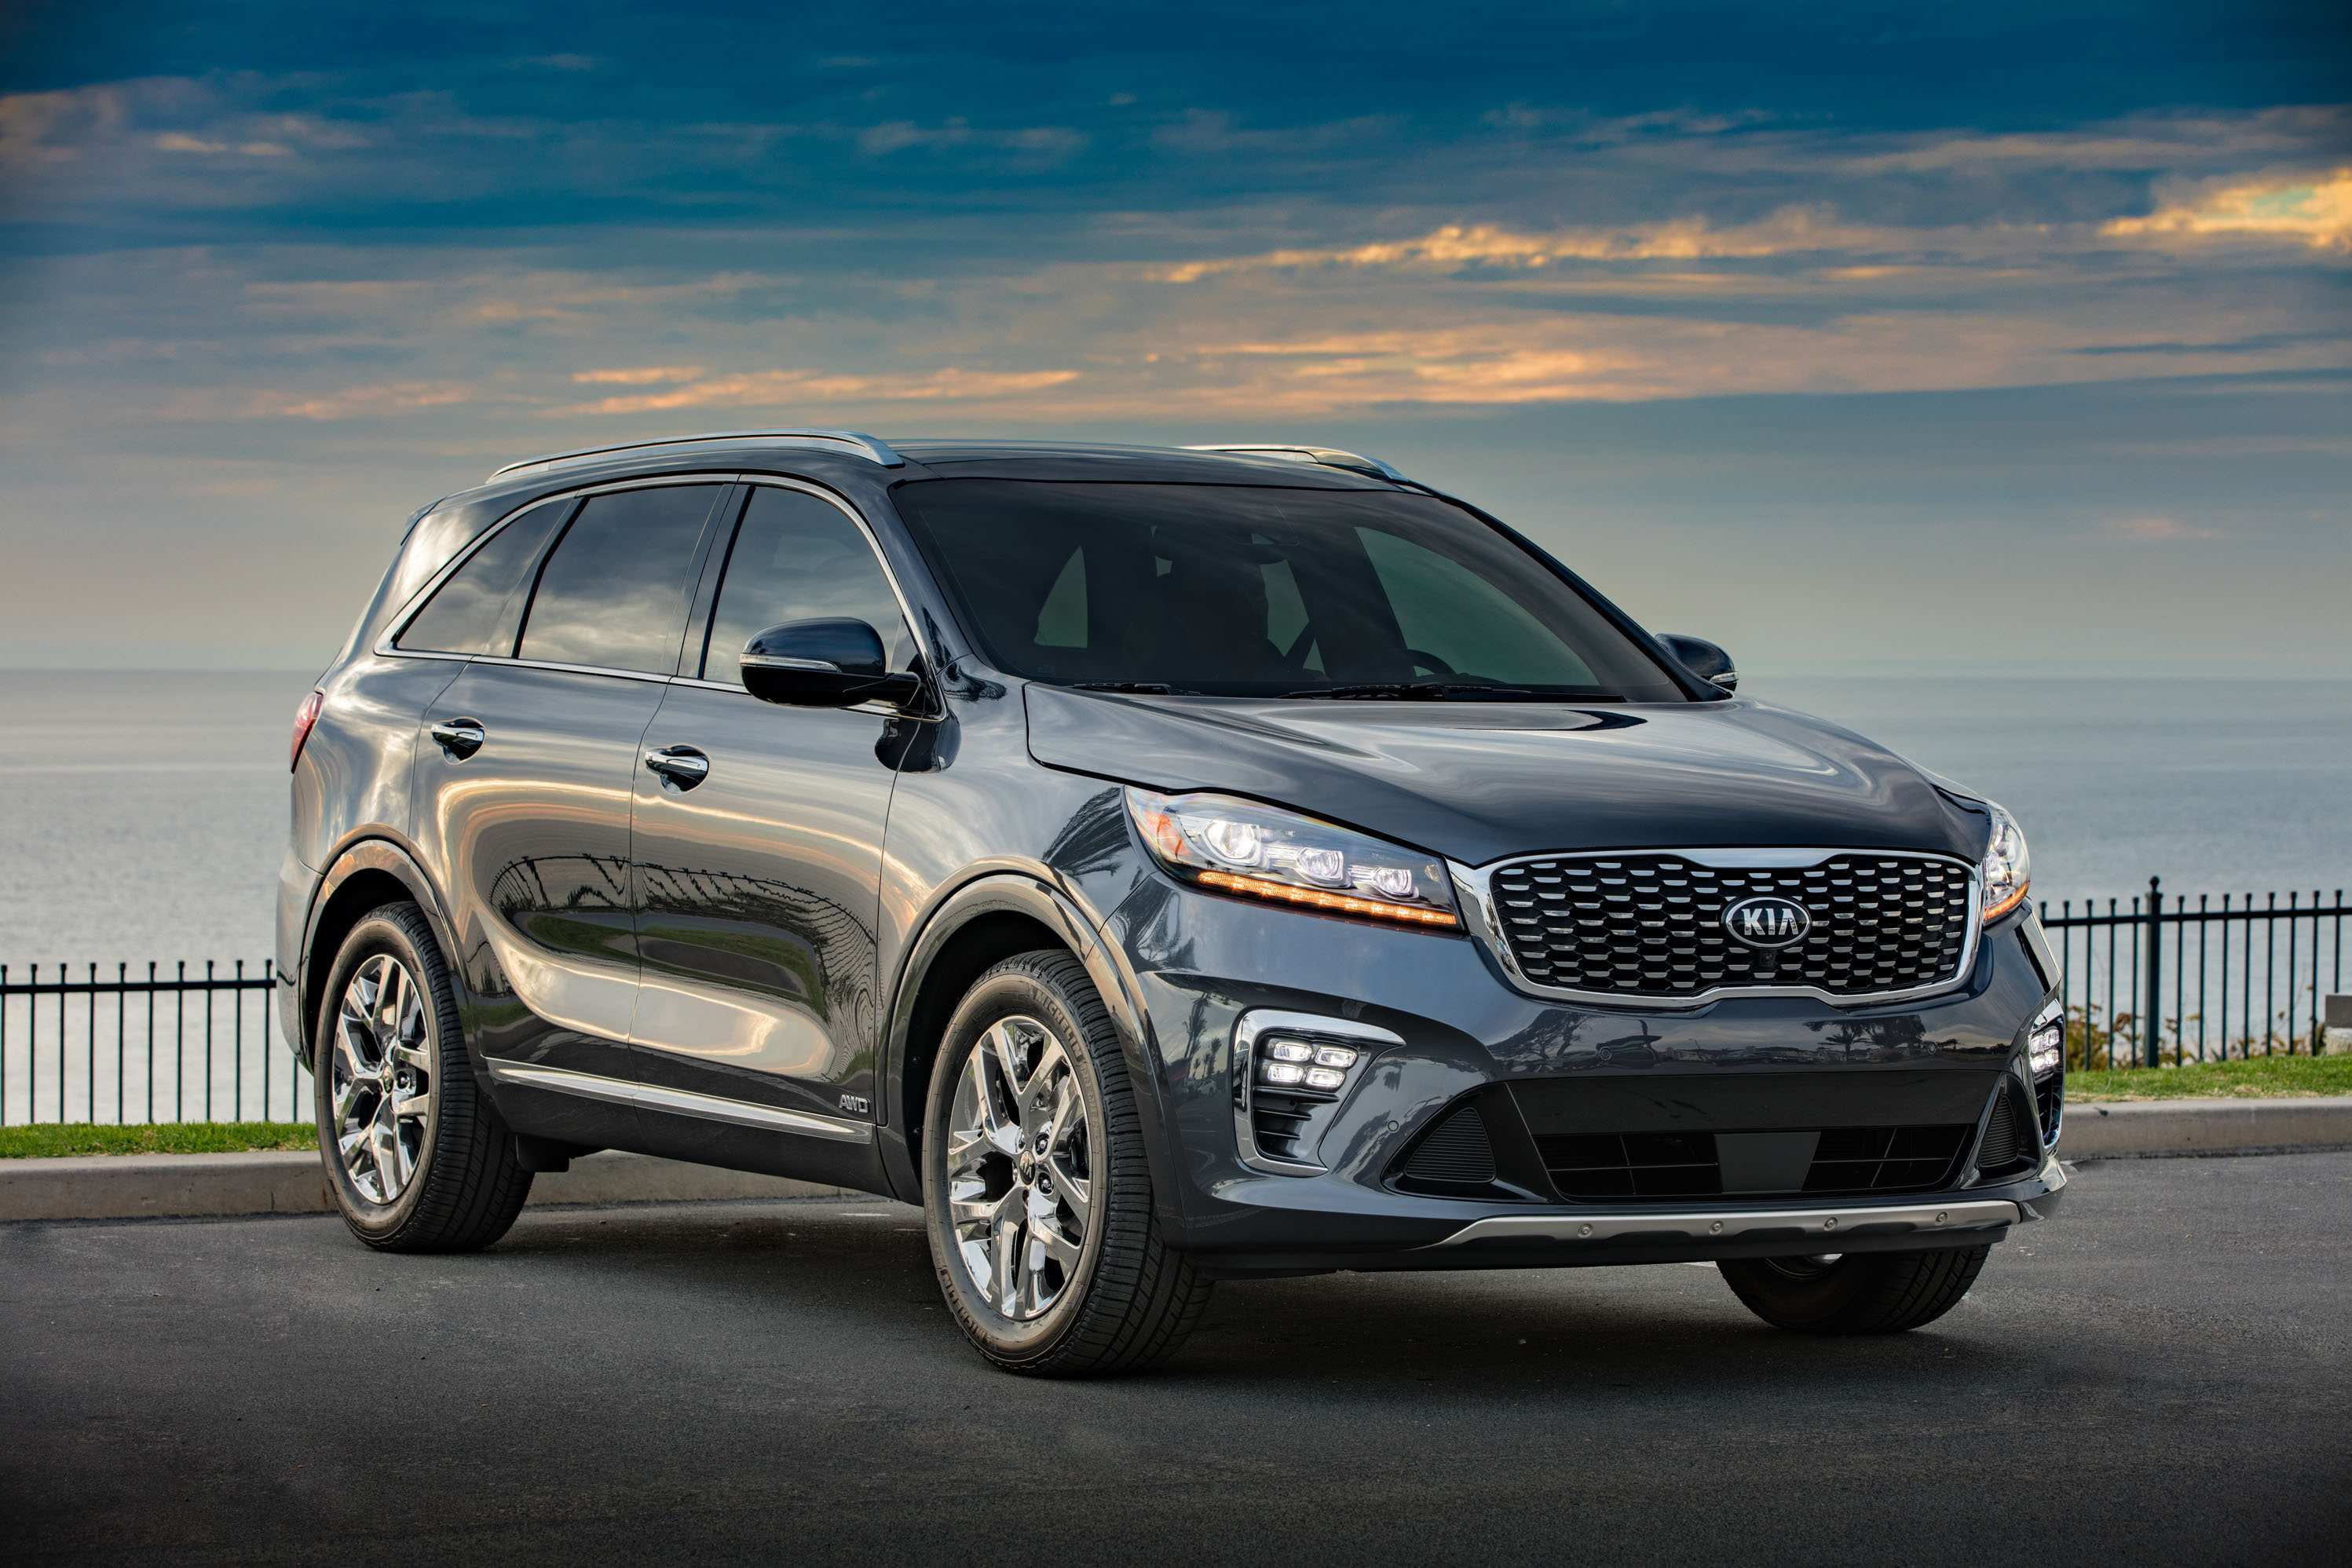 97 Best 2019 Kia Diesel Wallpaper